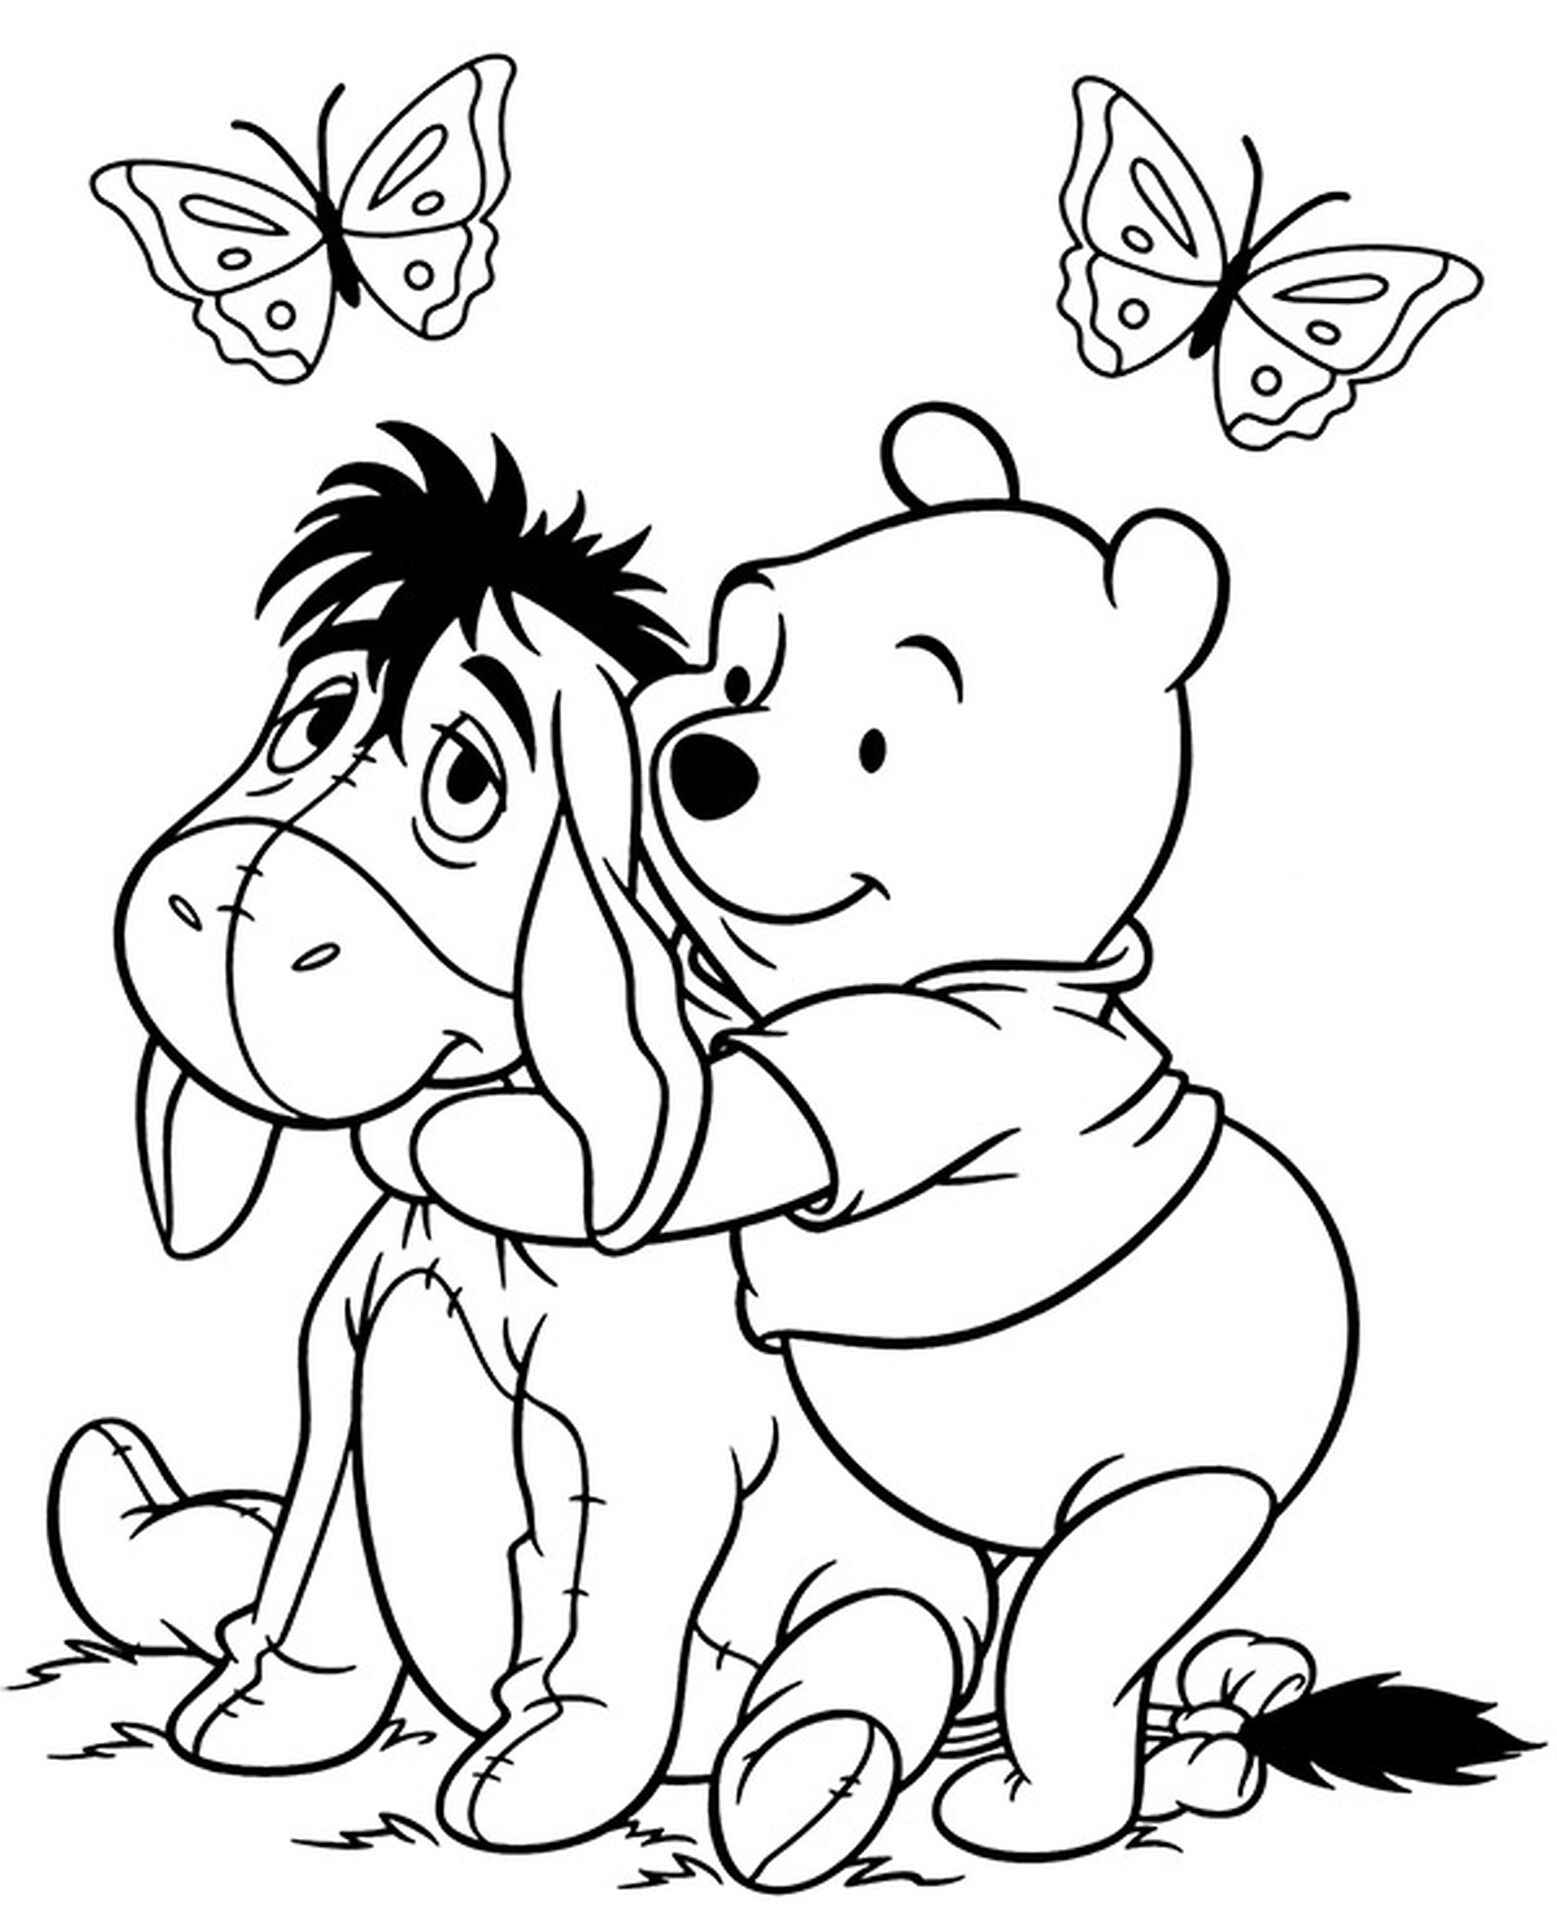 Pooh And Eeyore Coloring Page